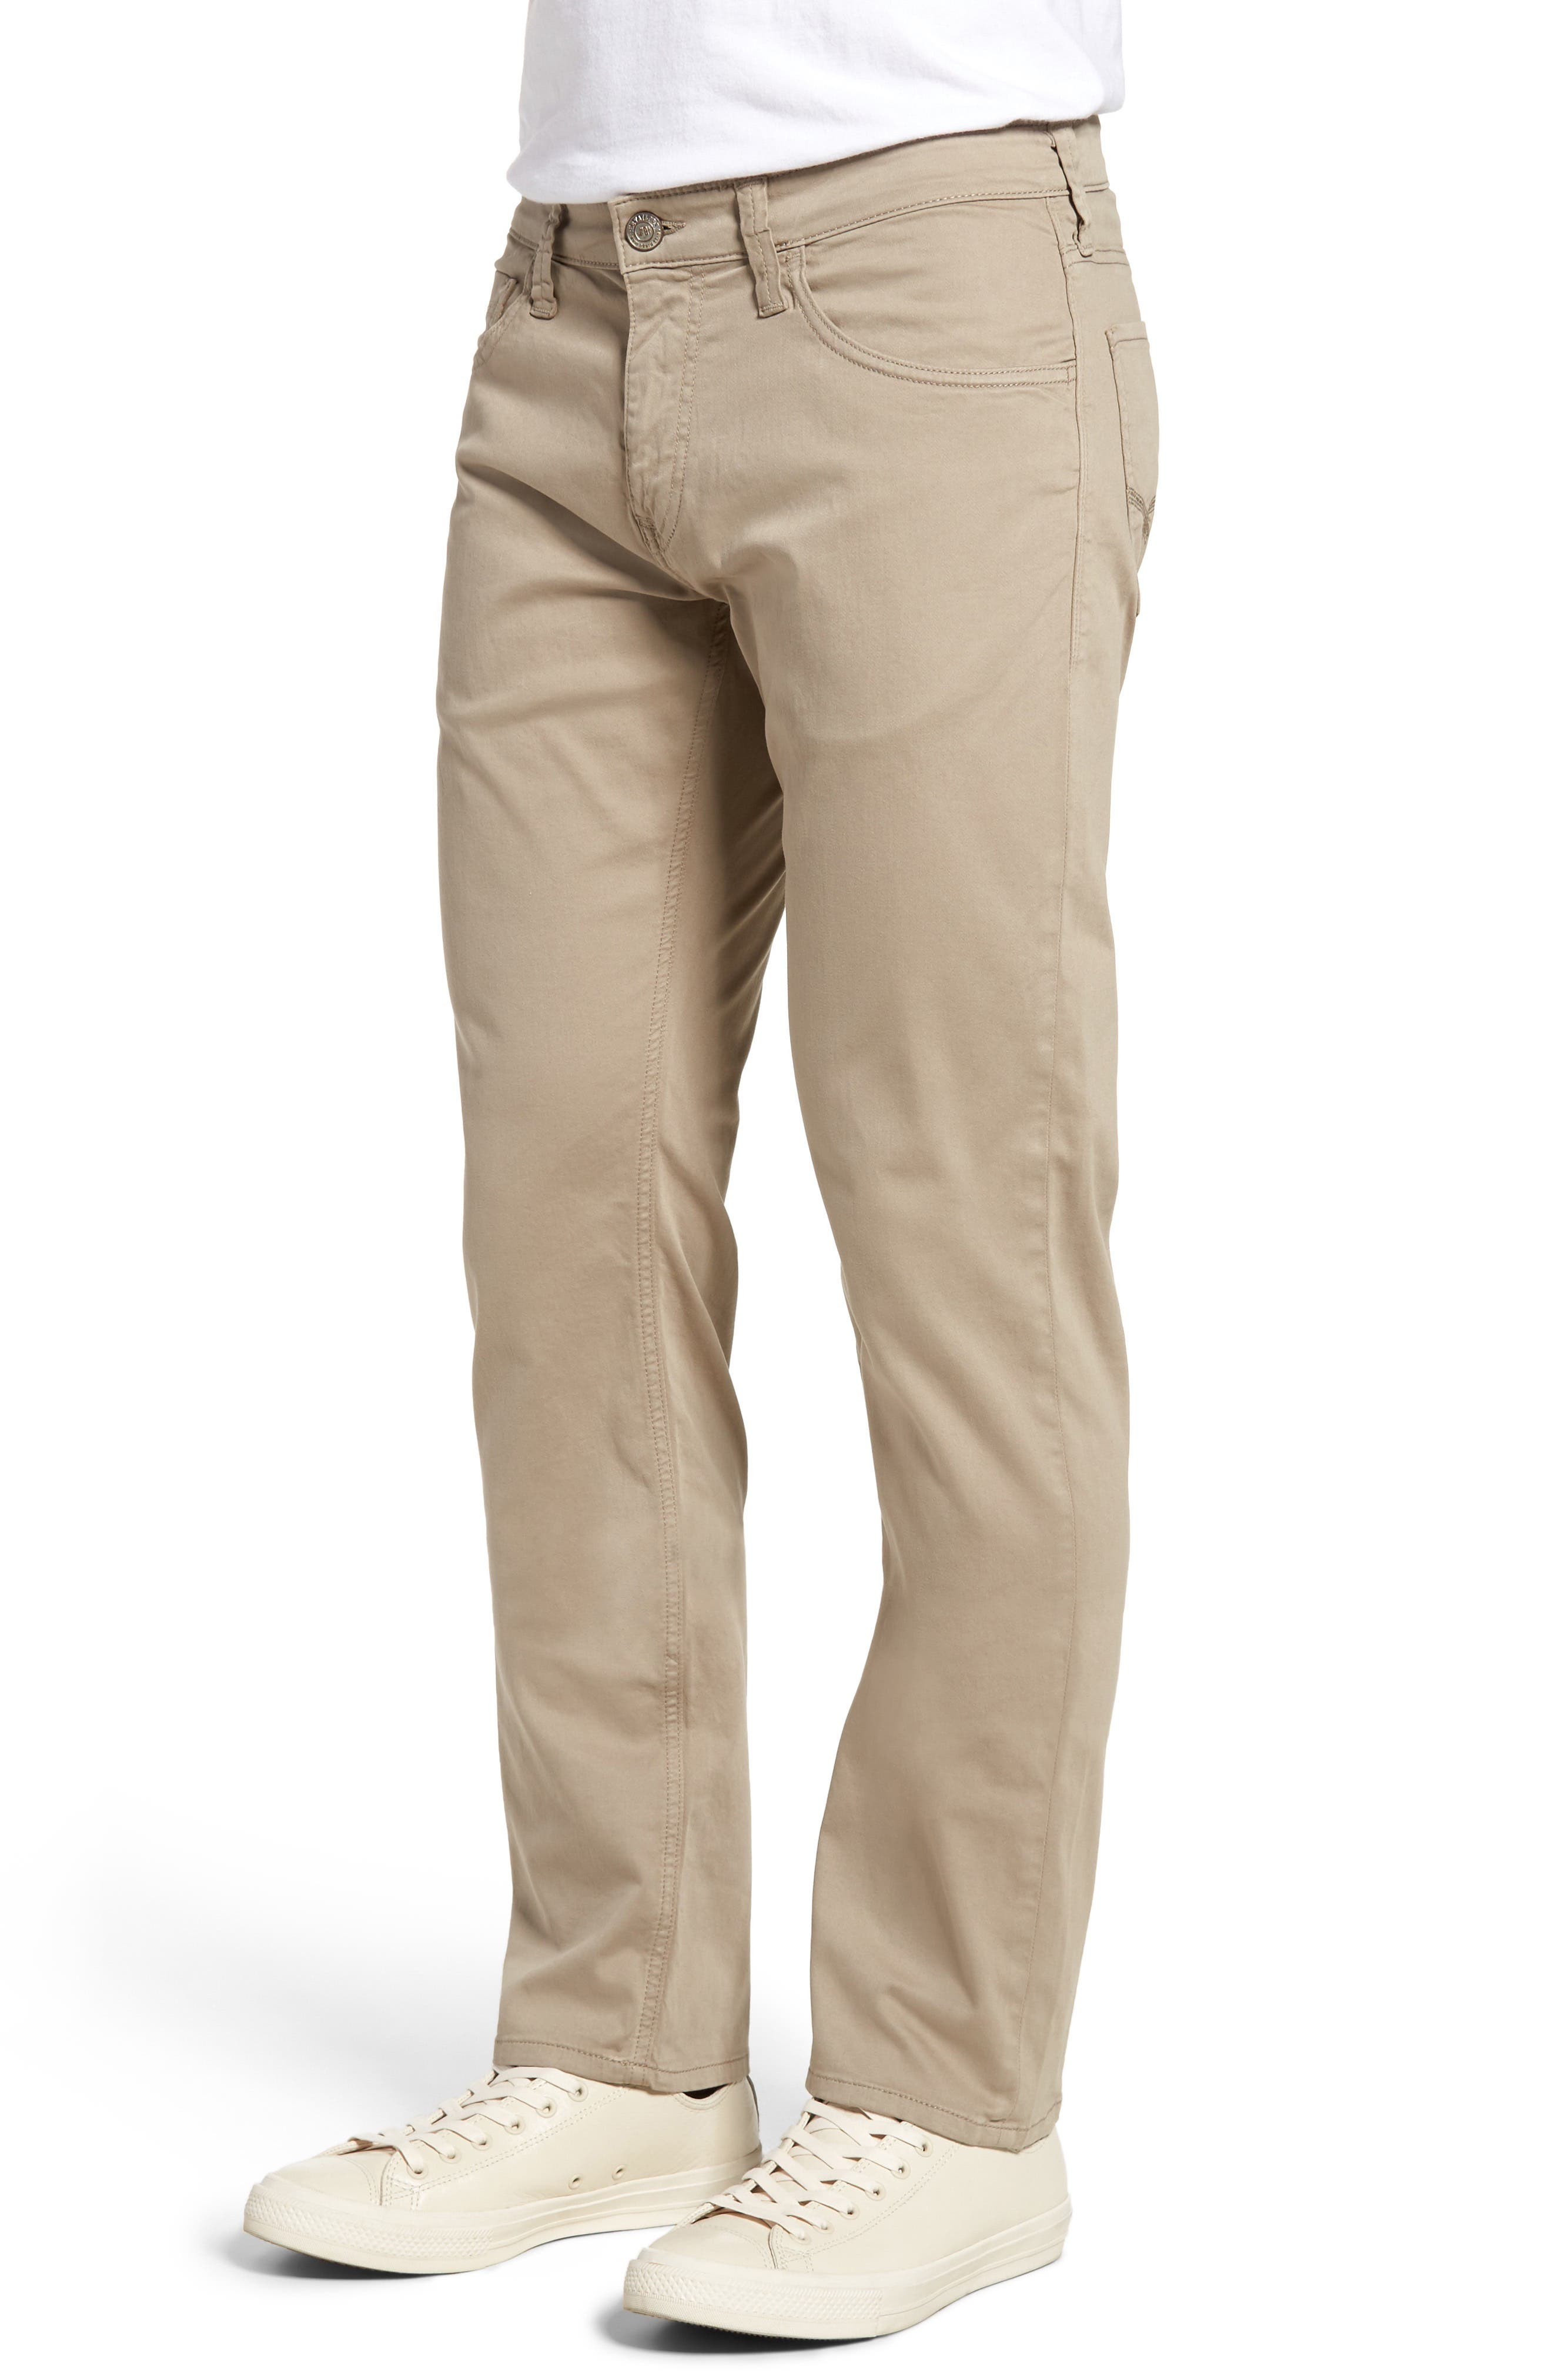 Zach Straight Leg Twill Pants,                             Alternate thumbnail 3, color,                             BEIGE TWILL